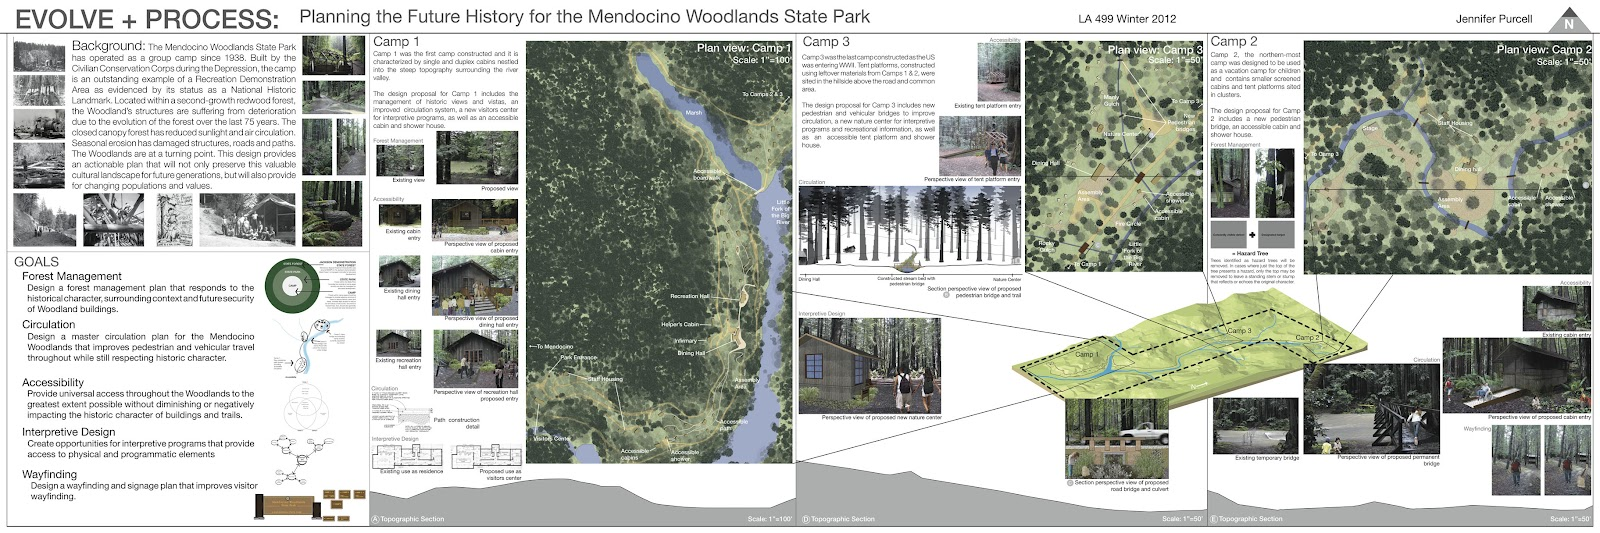 Adventures In Landscape Architecture March 2012